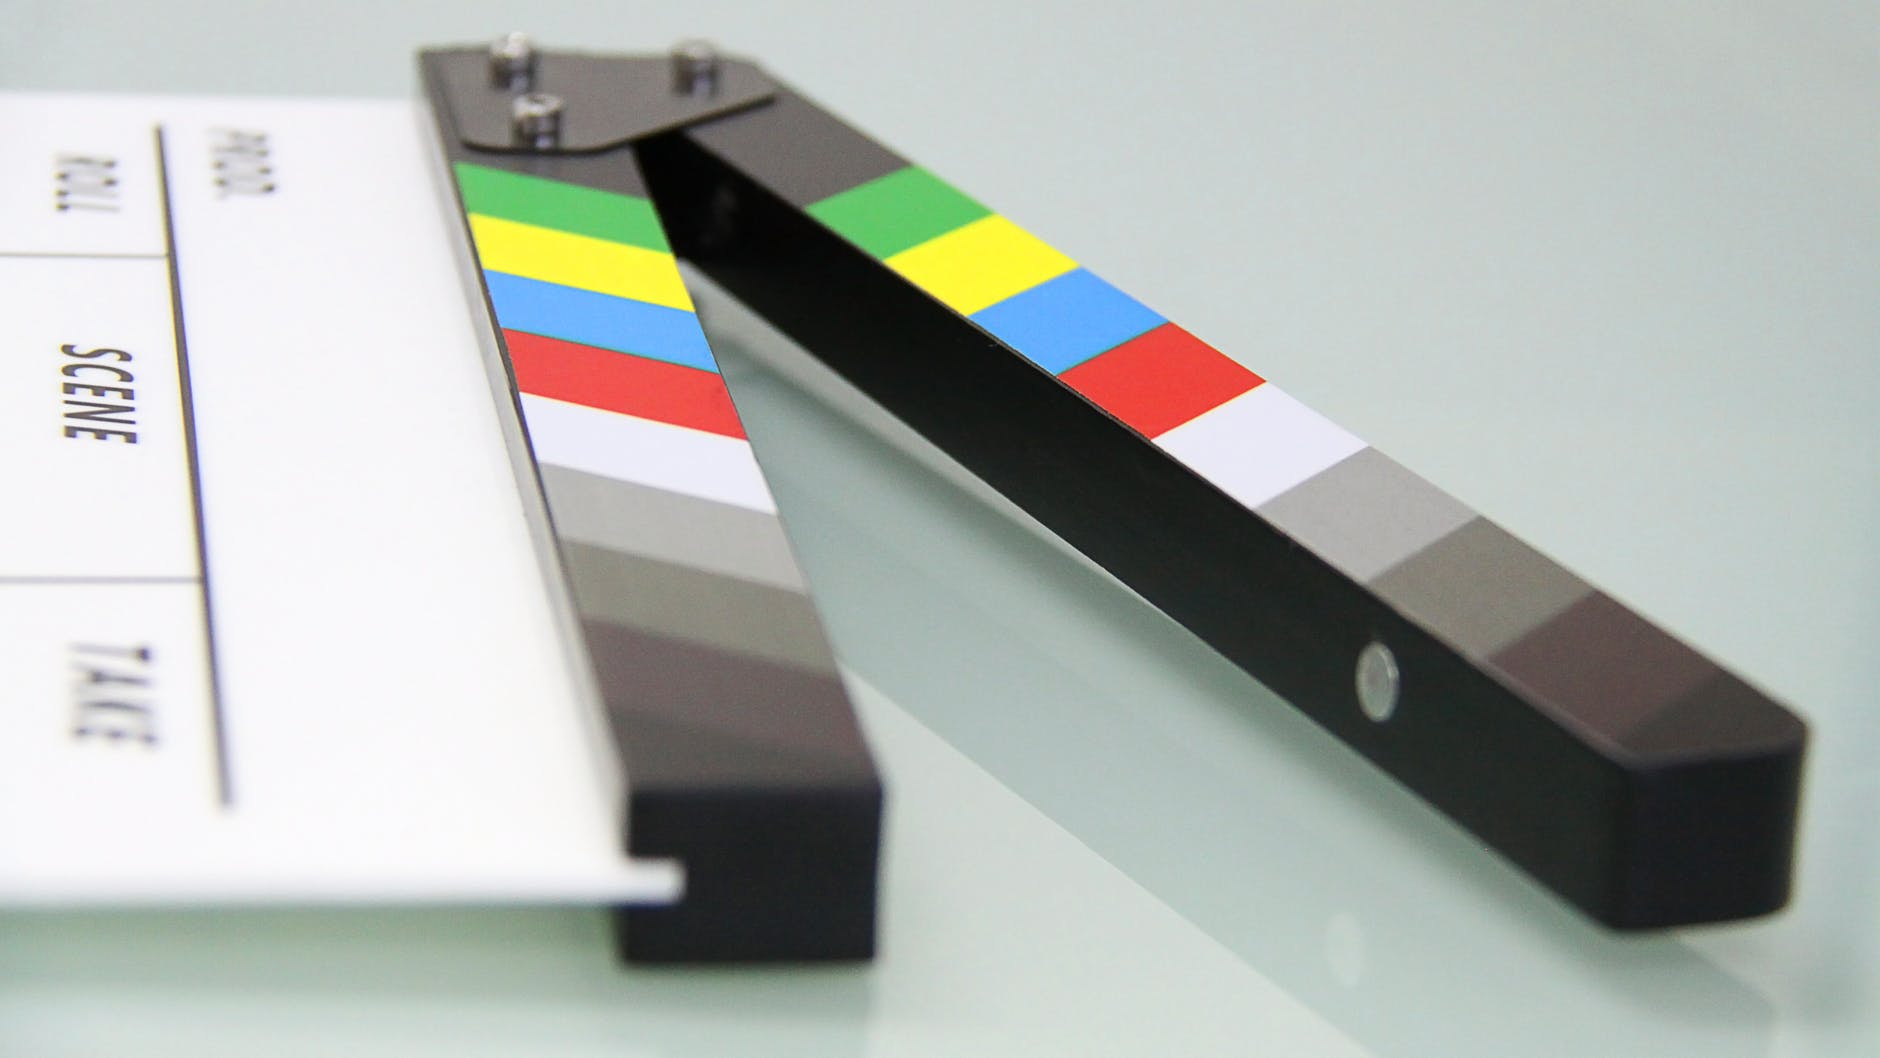 Black and white clapper board (public domain image)